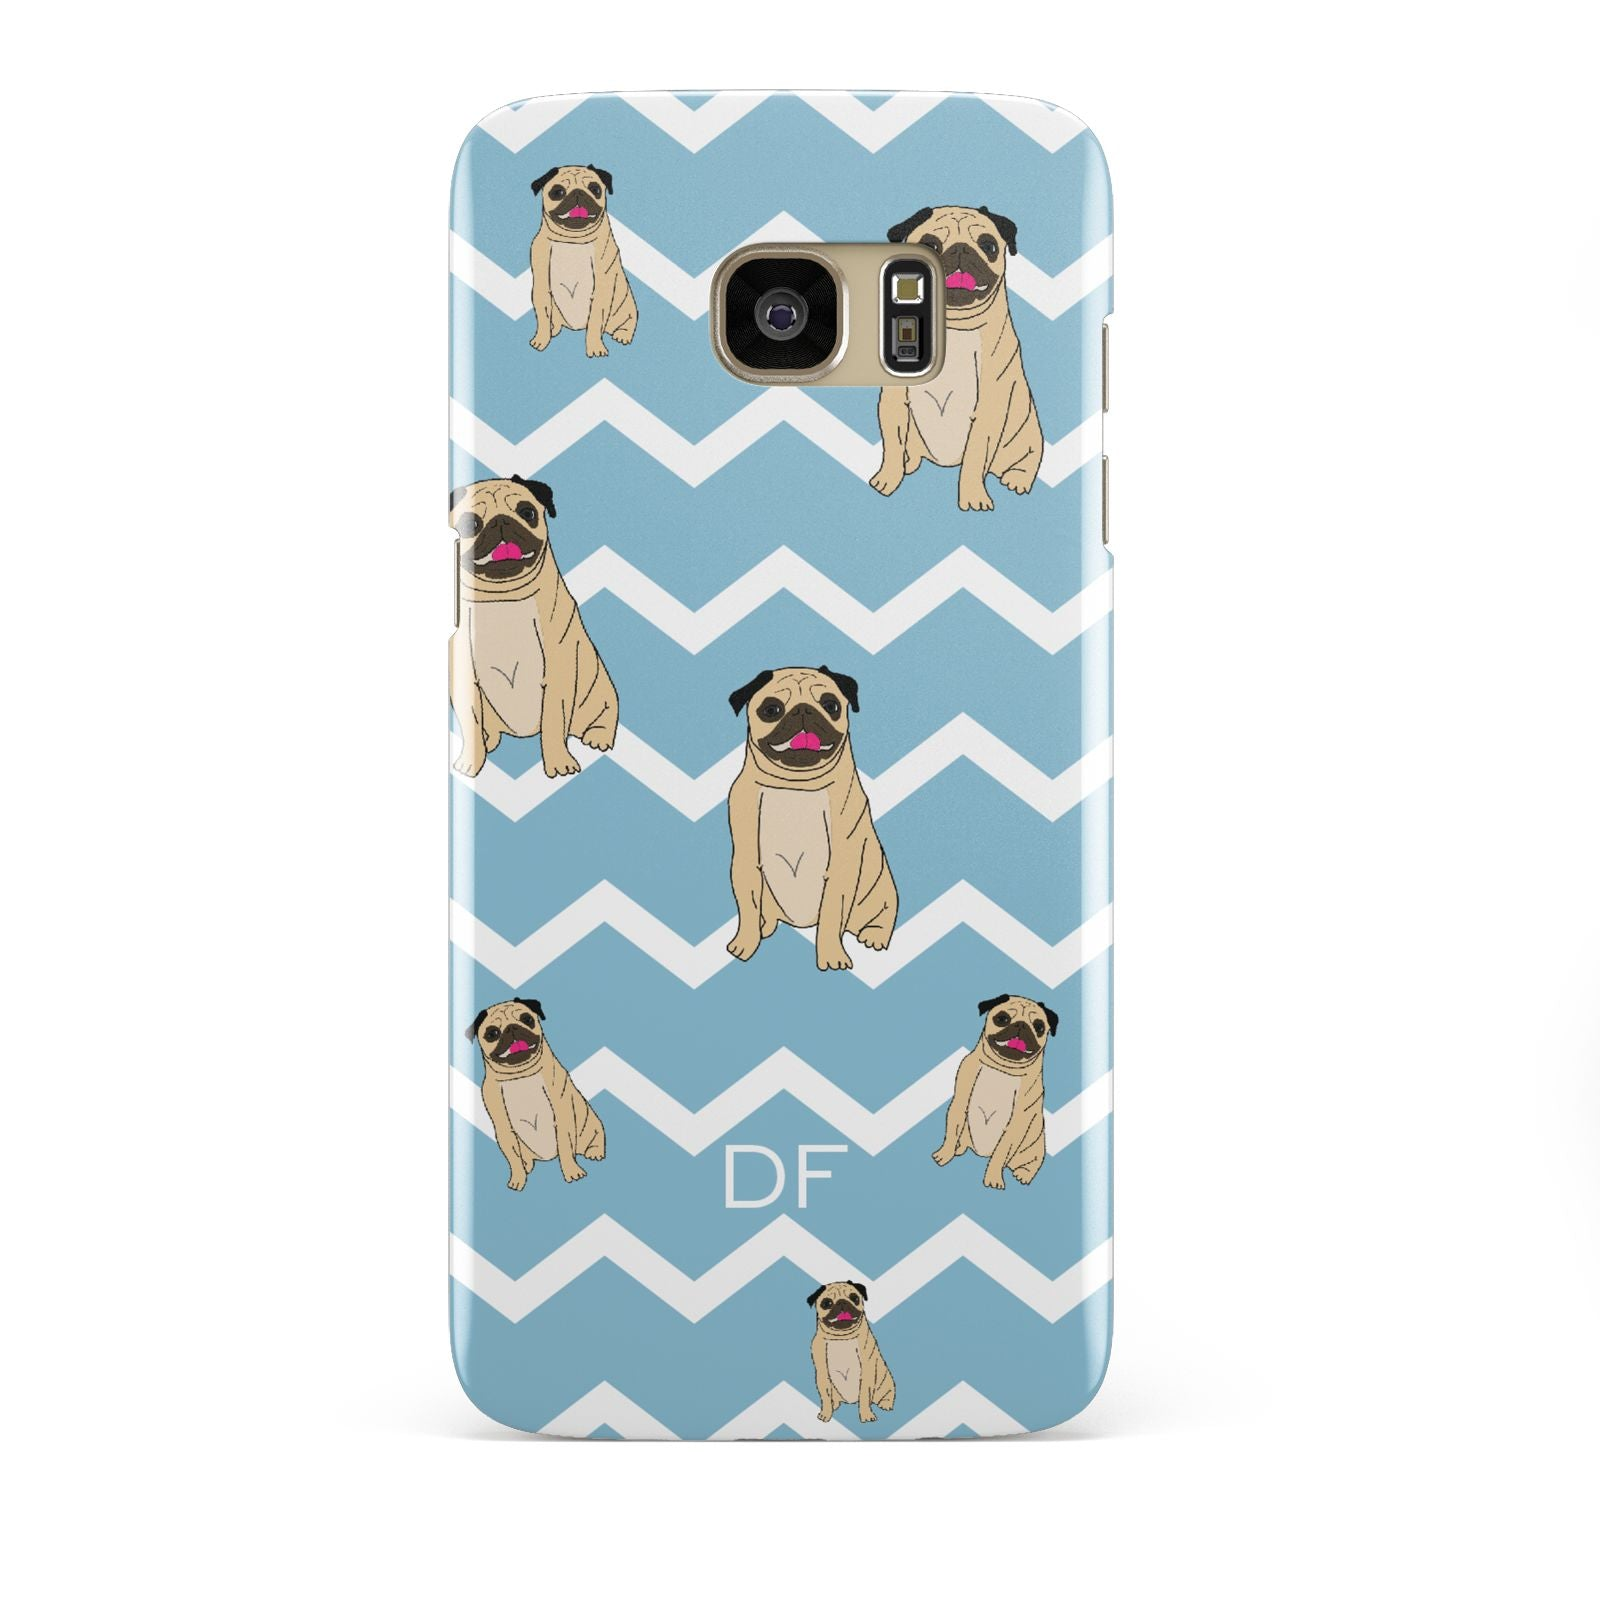 Personalised Pug Initials Samsung Galaxy S7 Edge Case